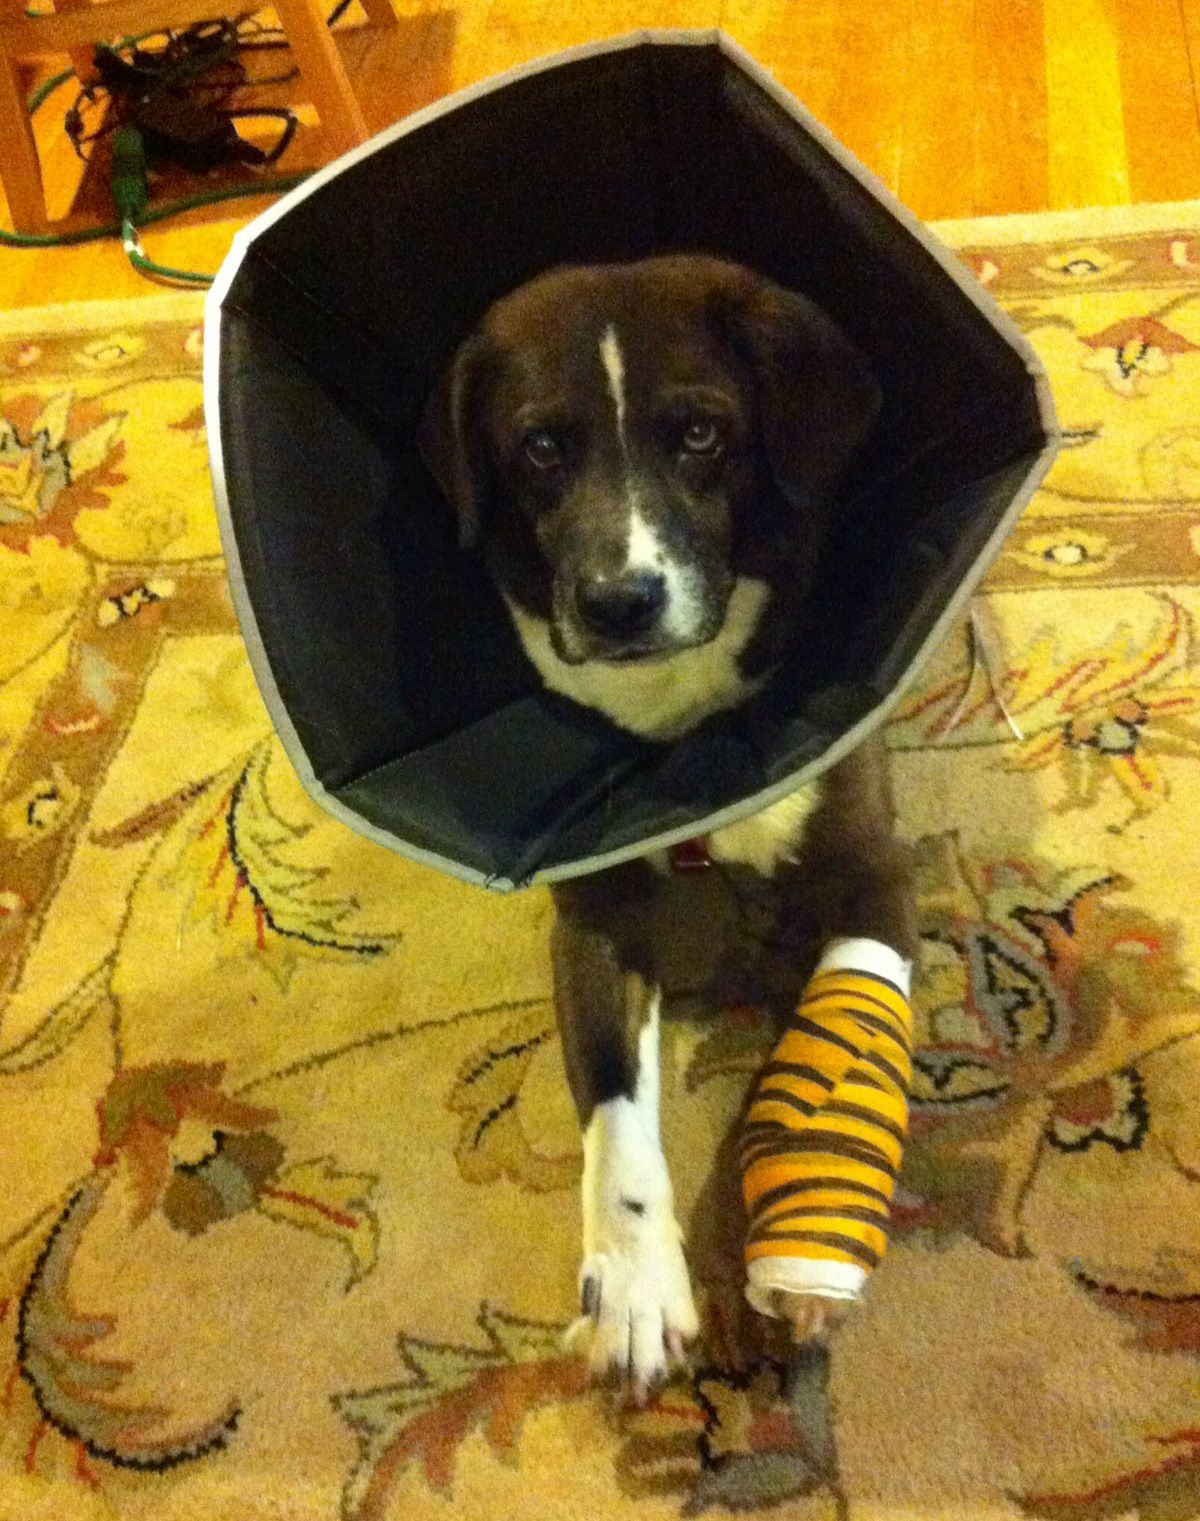 Still cute, even in a cone.